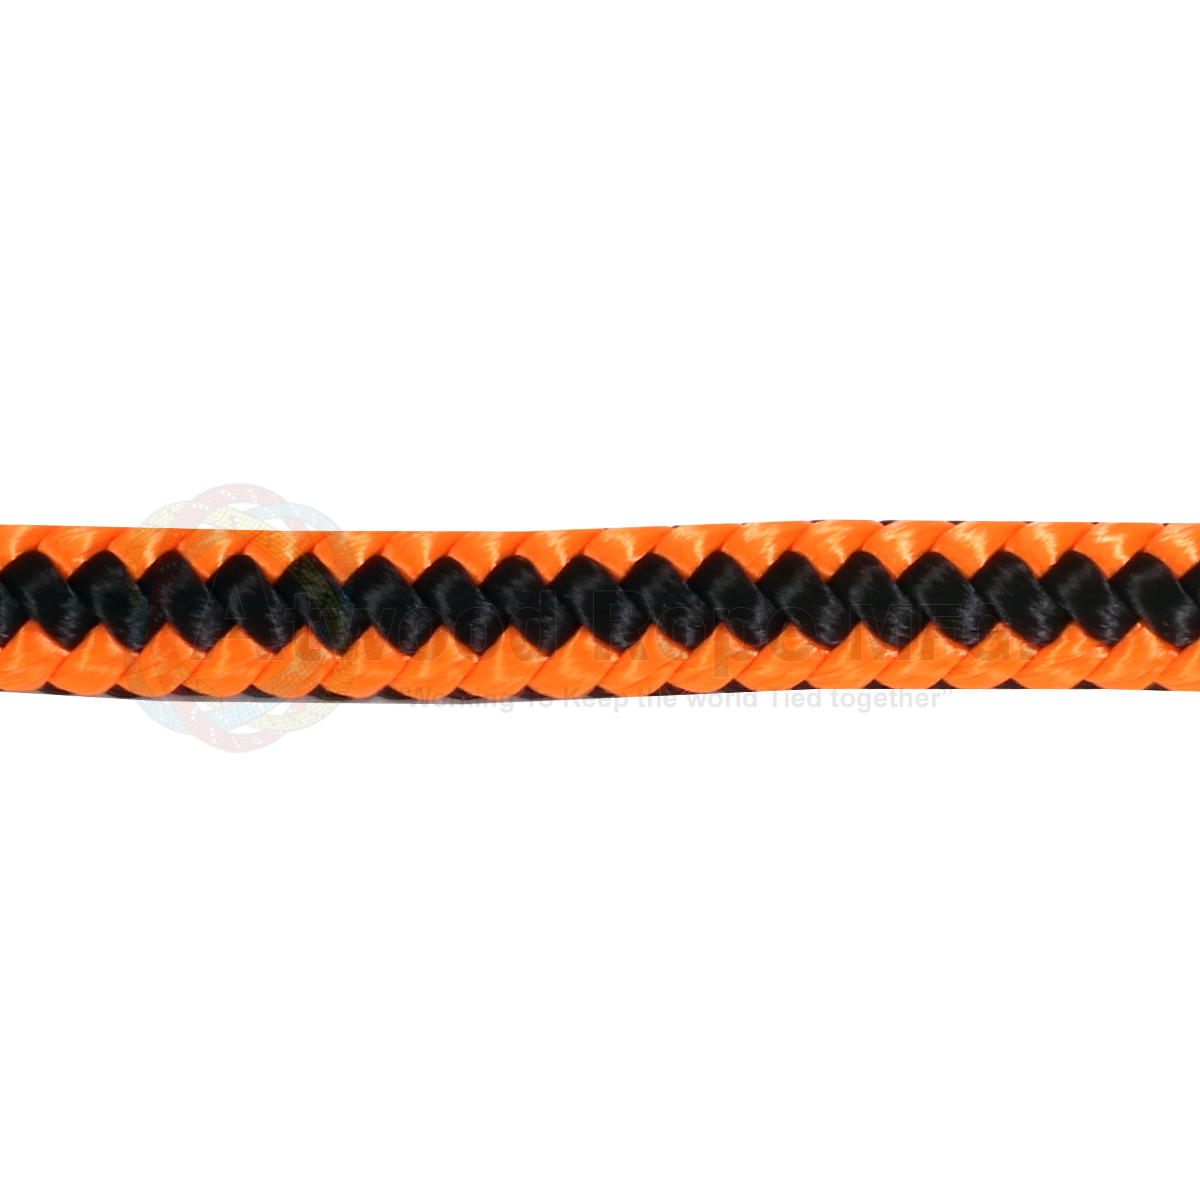 5/8 x 150ft Arborist Tree Line - Neon Orange & Black